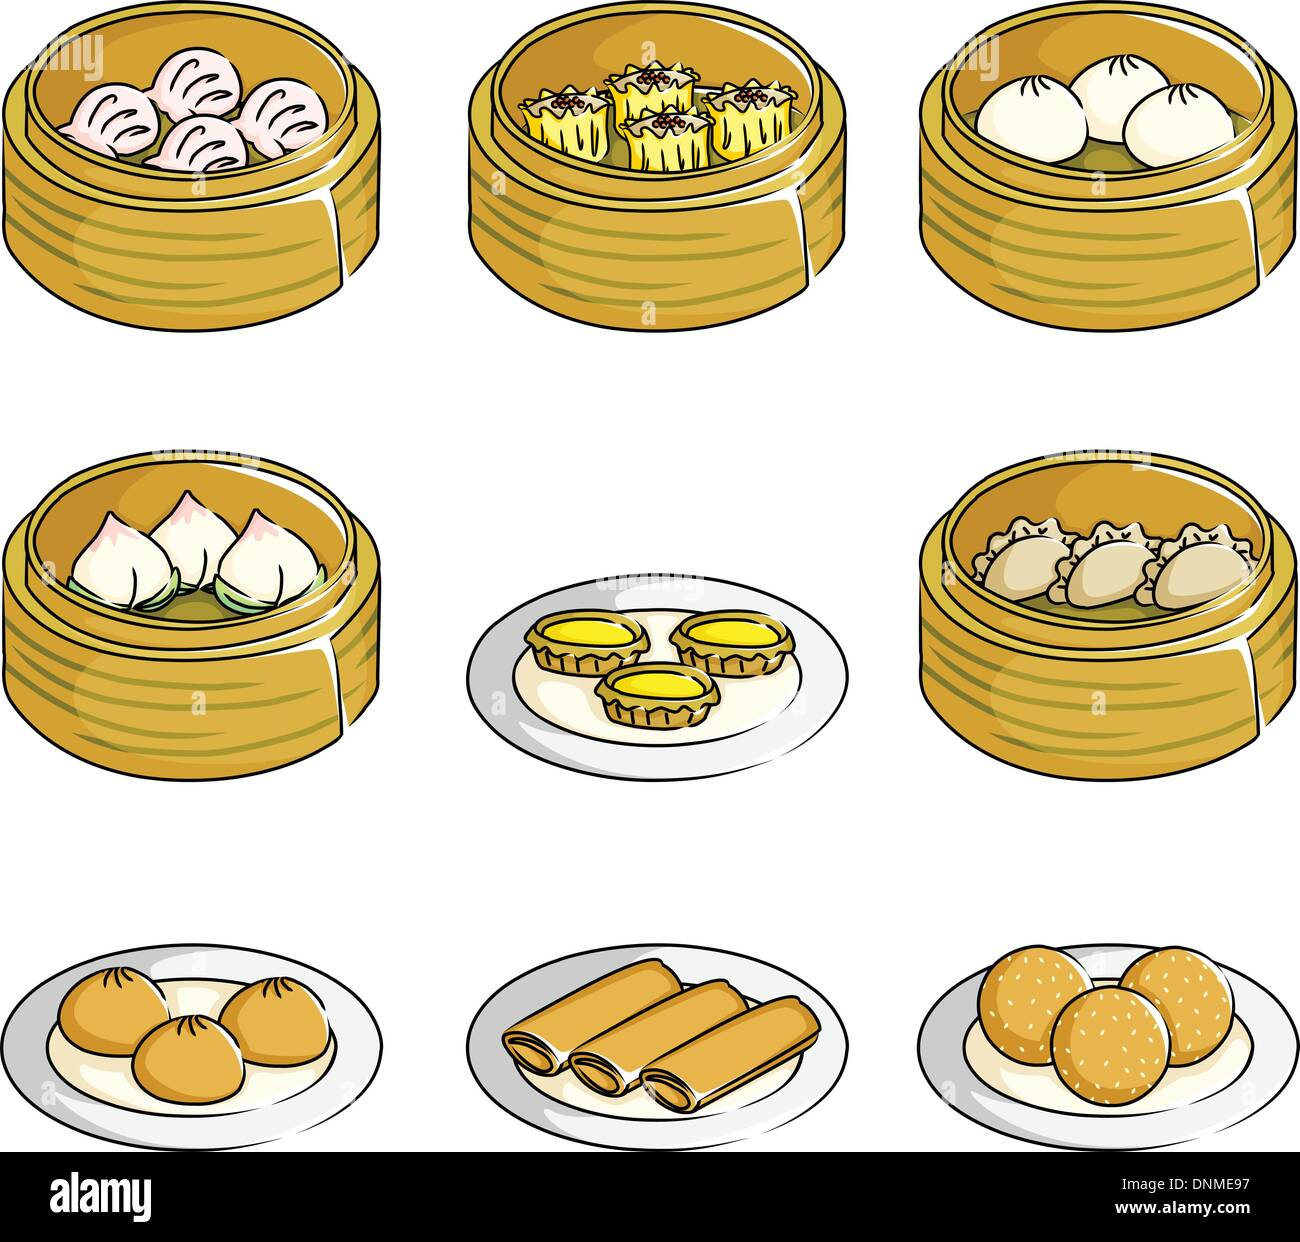 A Vector Illustration Of Chinese Dim Sum Icons Stock Vector Image Art Alamy